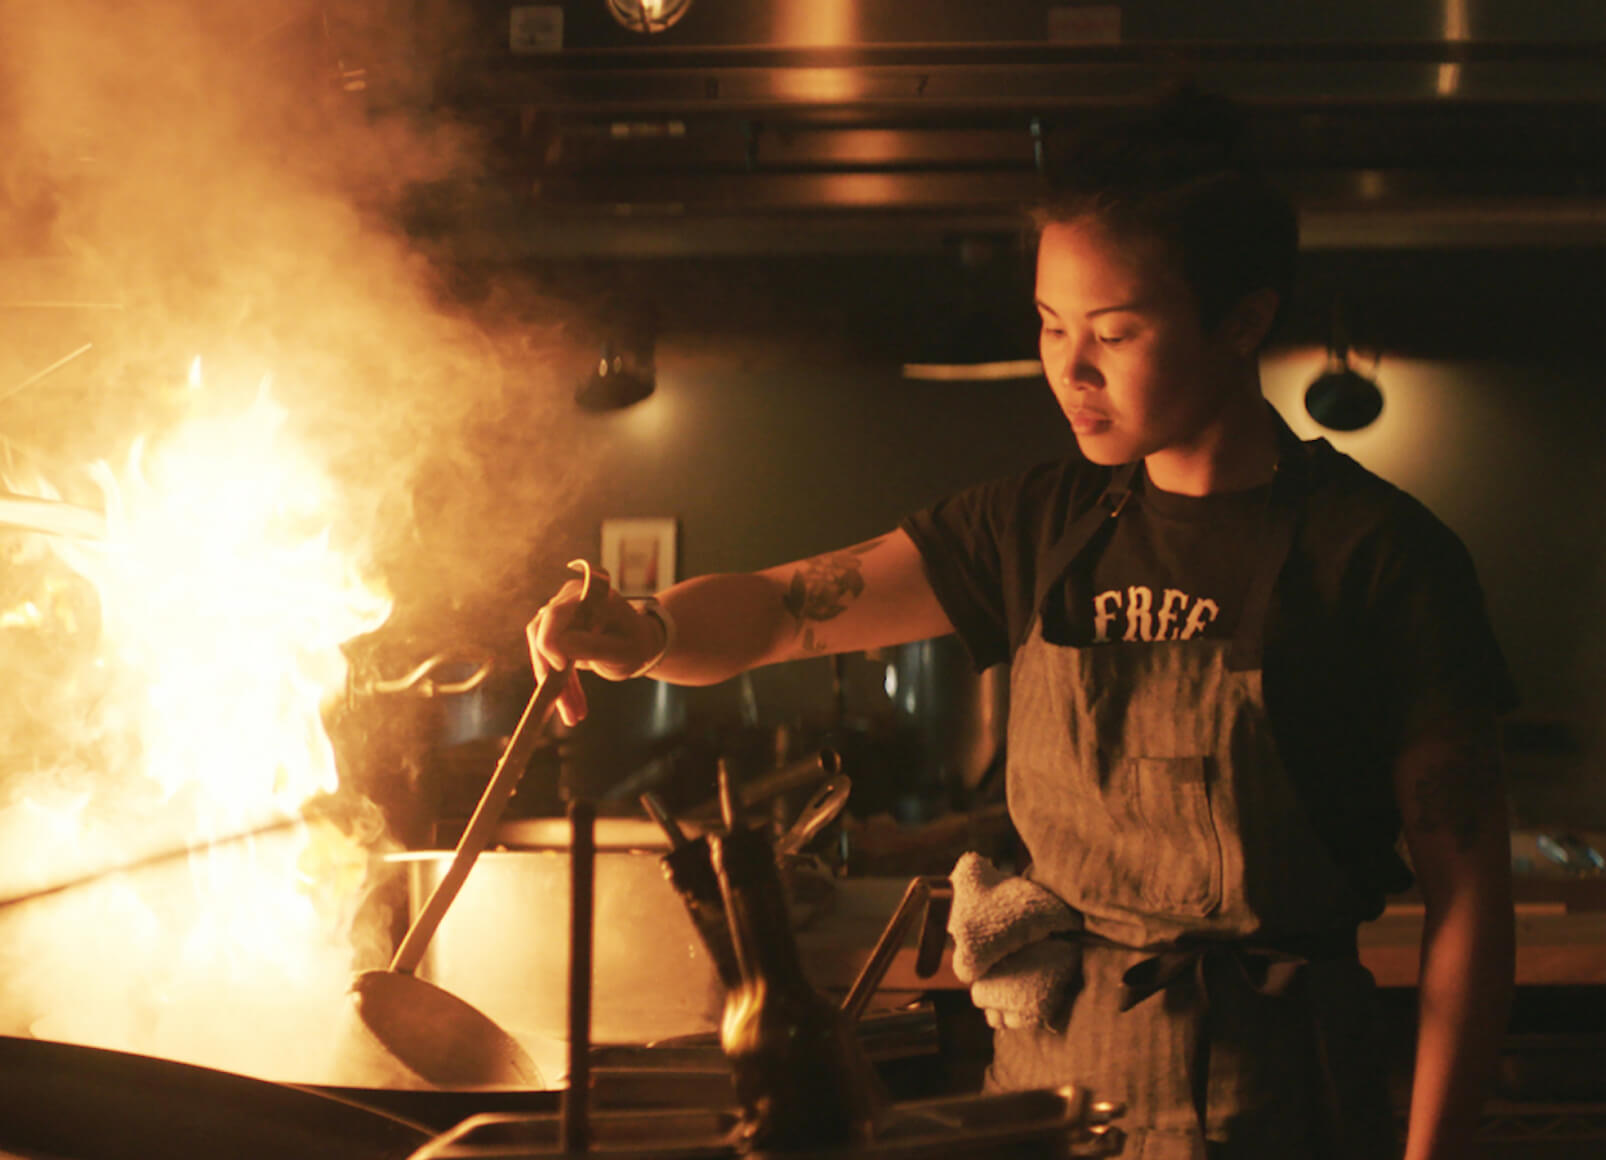 Marielle Fabie cooking over an open flame.